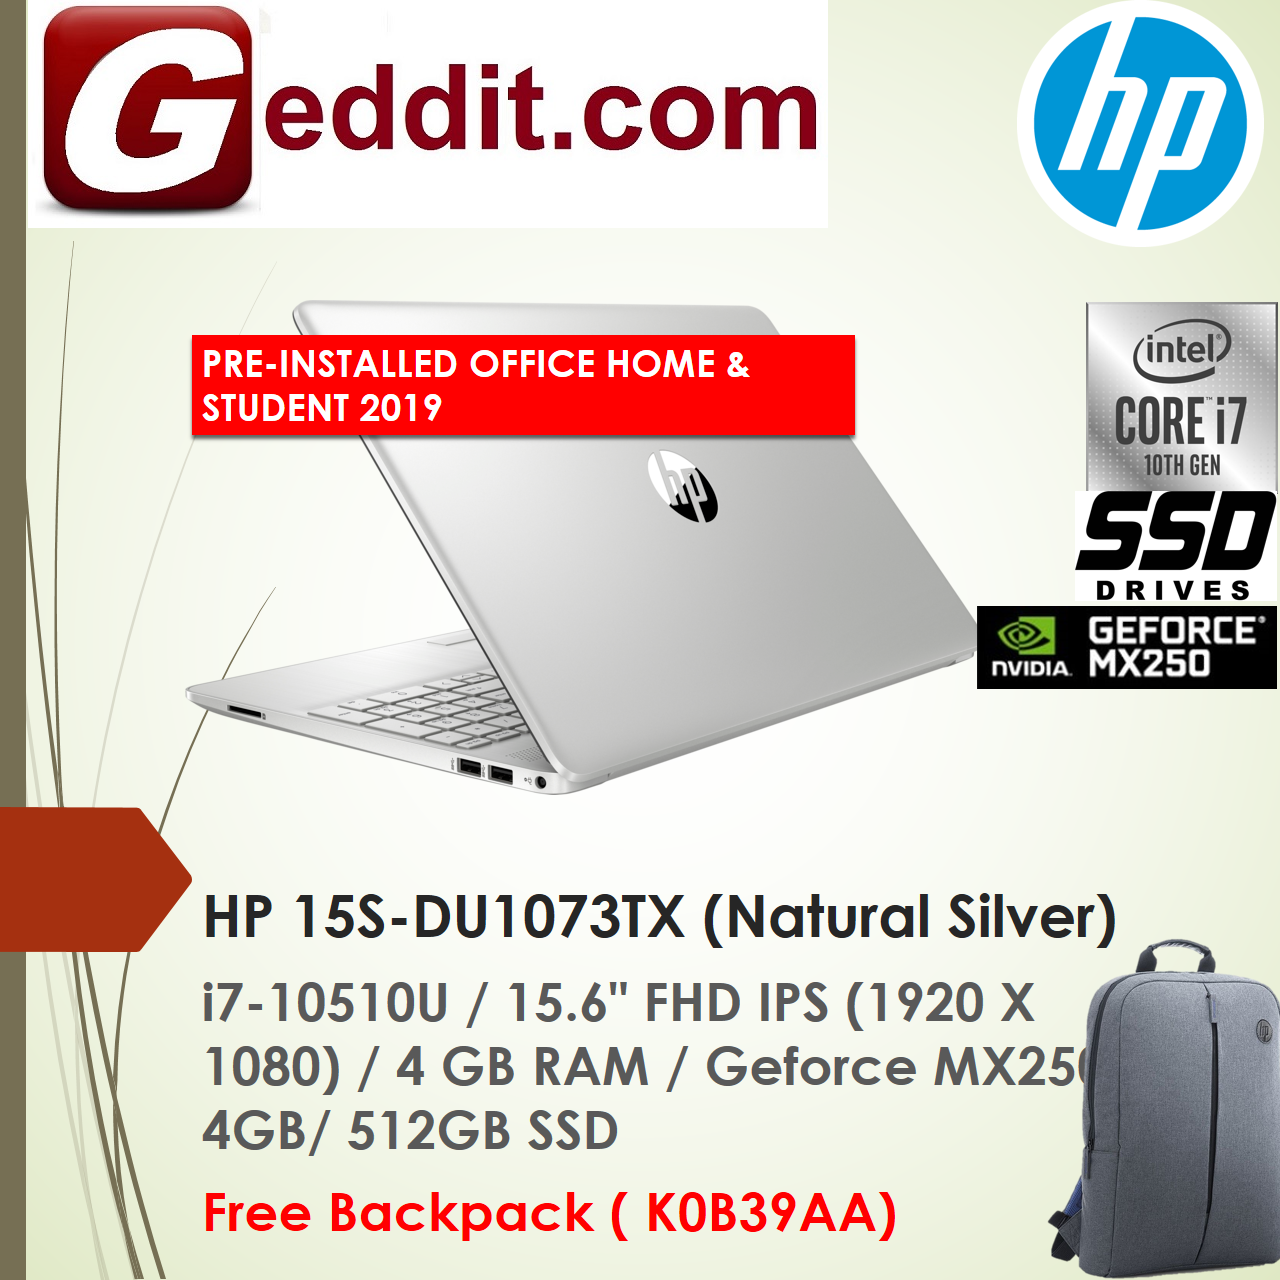 HP 15S-DU1073TX LAPTOP SILVER (I7-10510U,4GB,512GB SSD,15.6 FHD,GEFORCE MX250 4GB,WIN10) FREE BACKPACK + PRE-INSTALLED OFFICE H&S 2019 (SEE i5 15S-DU1057TX 15S-DU1058TX) Malaysia